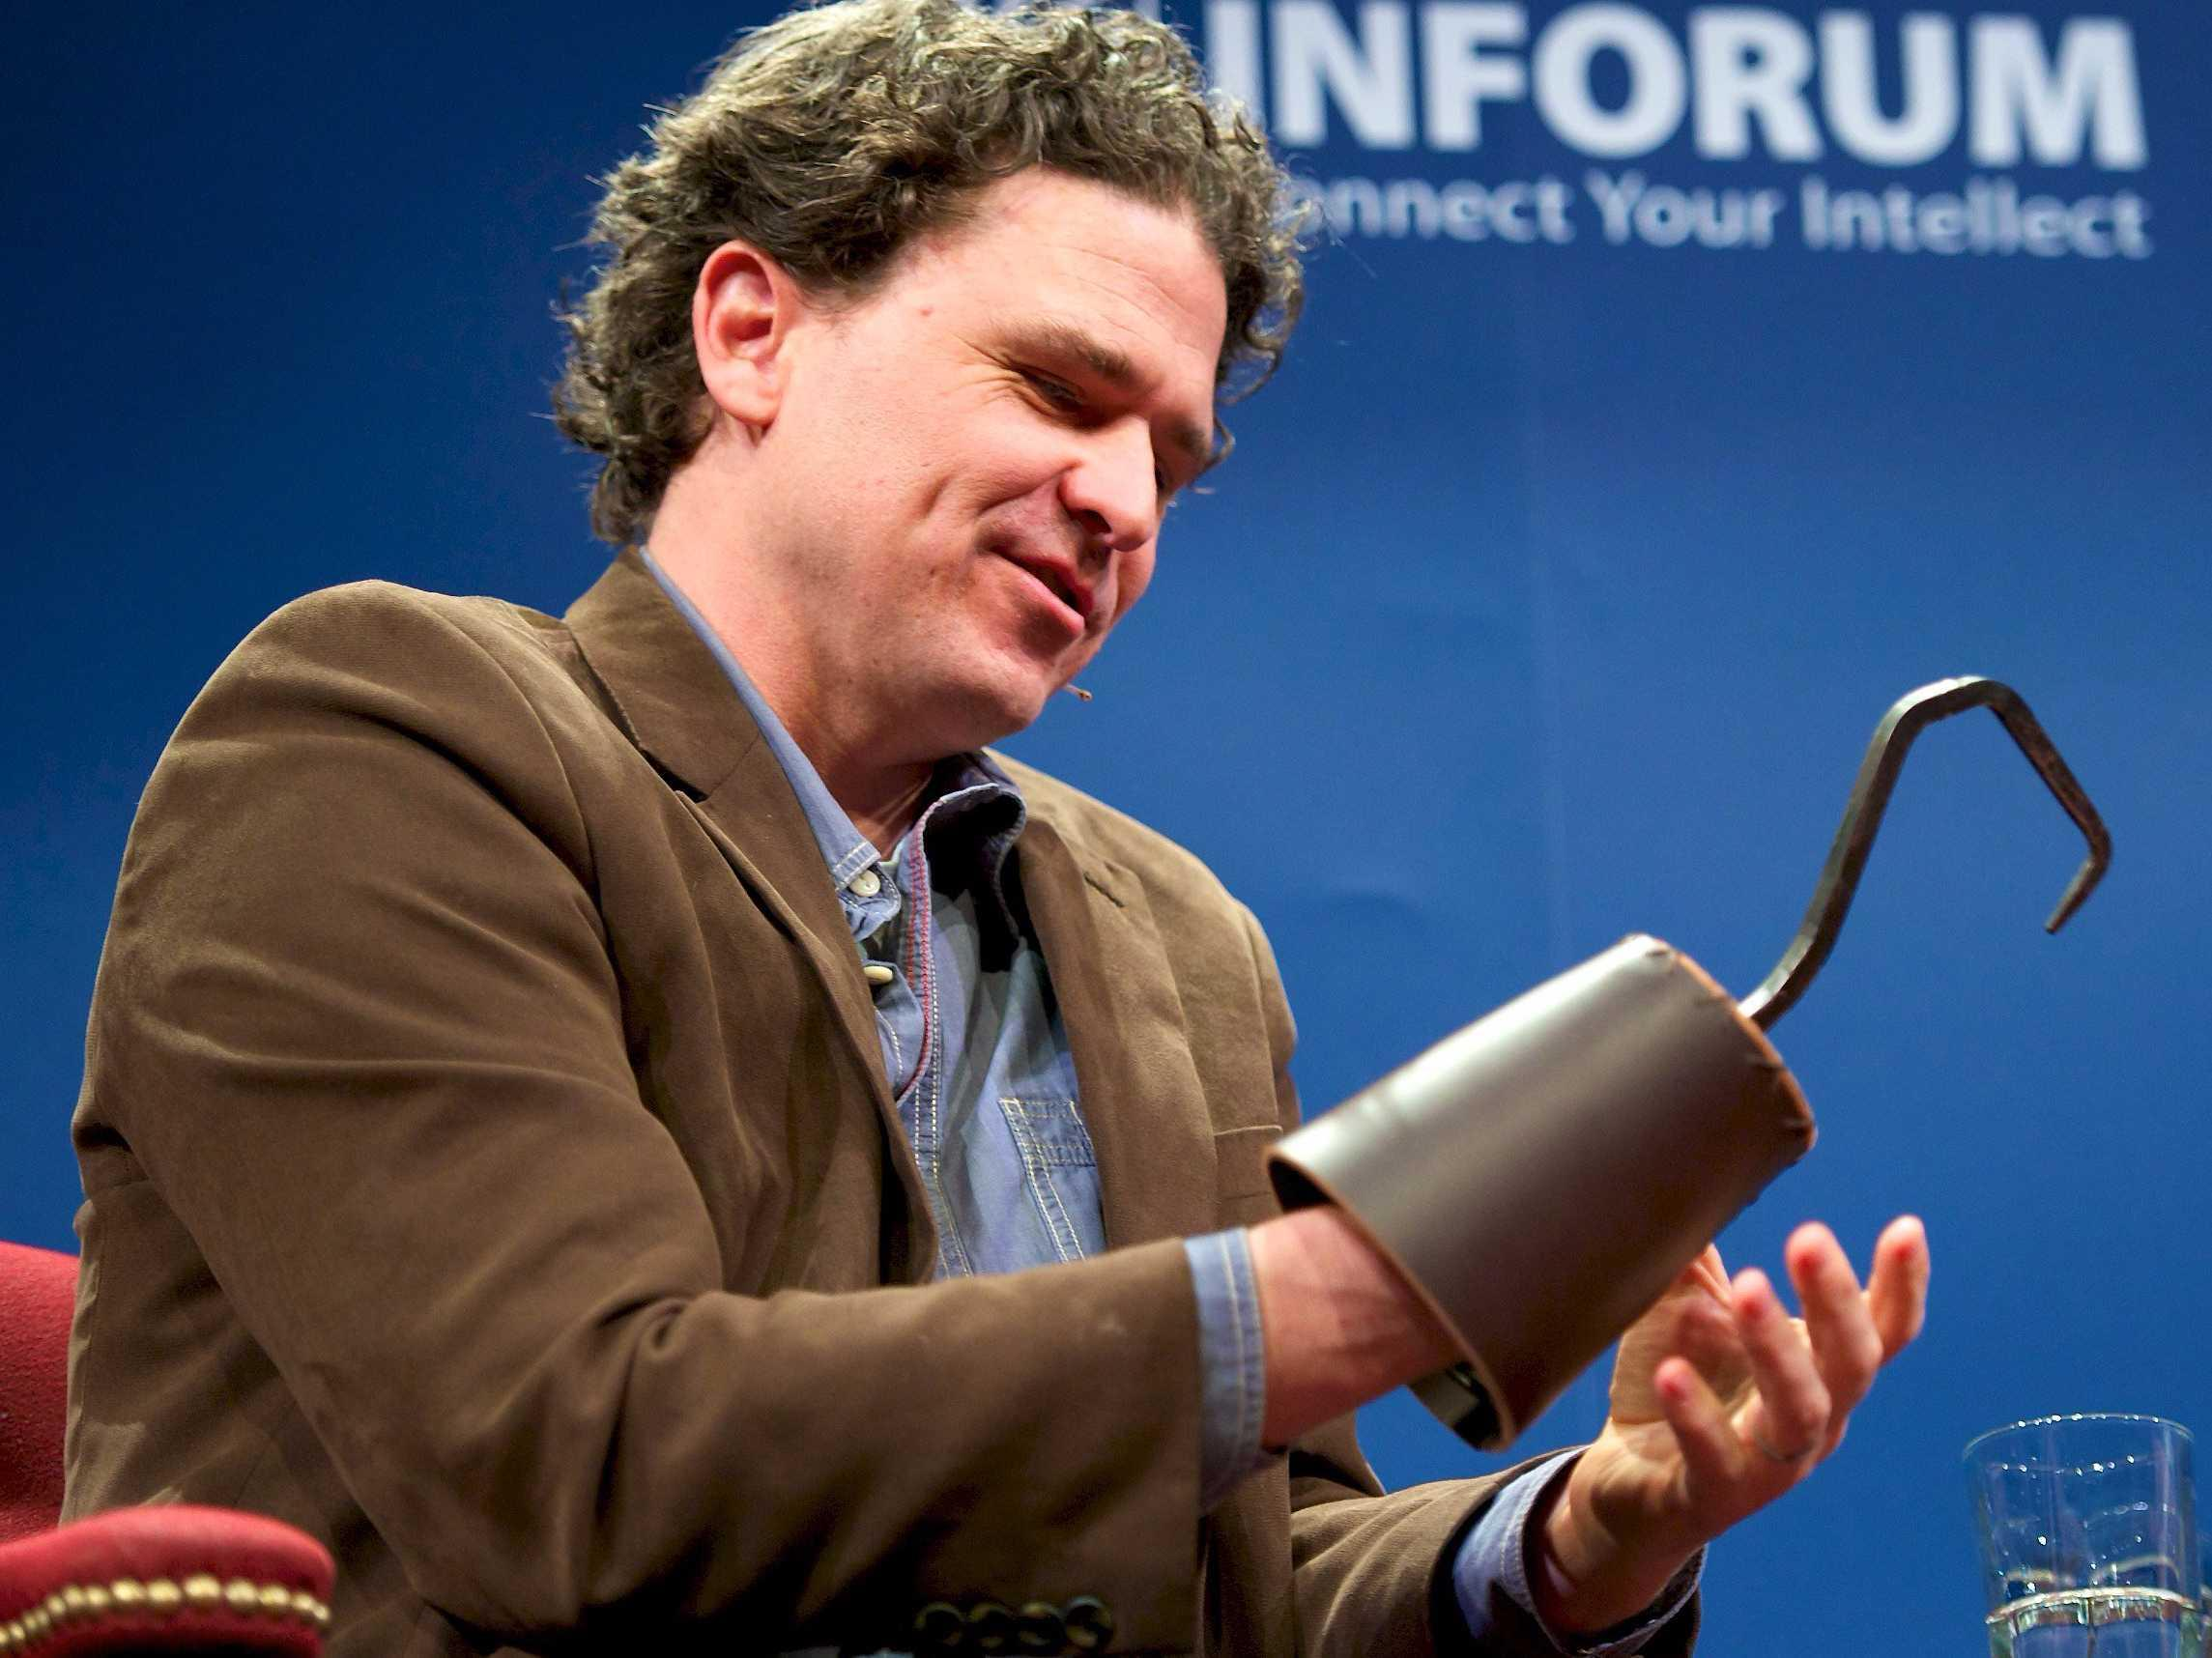 5 tips to write the best online dating profile, from writer Dave Eggers